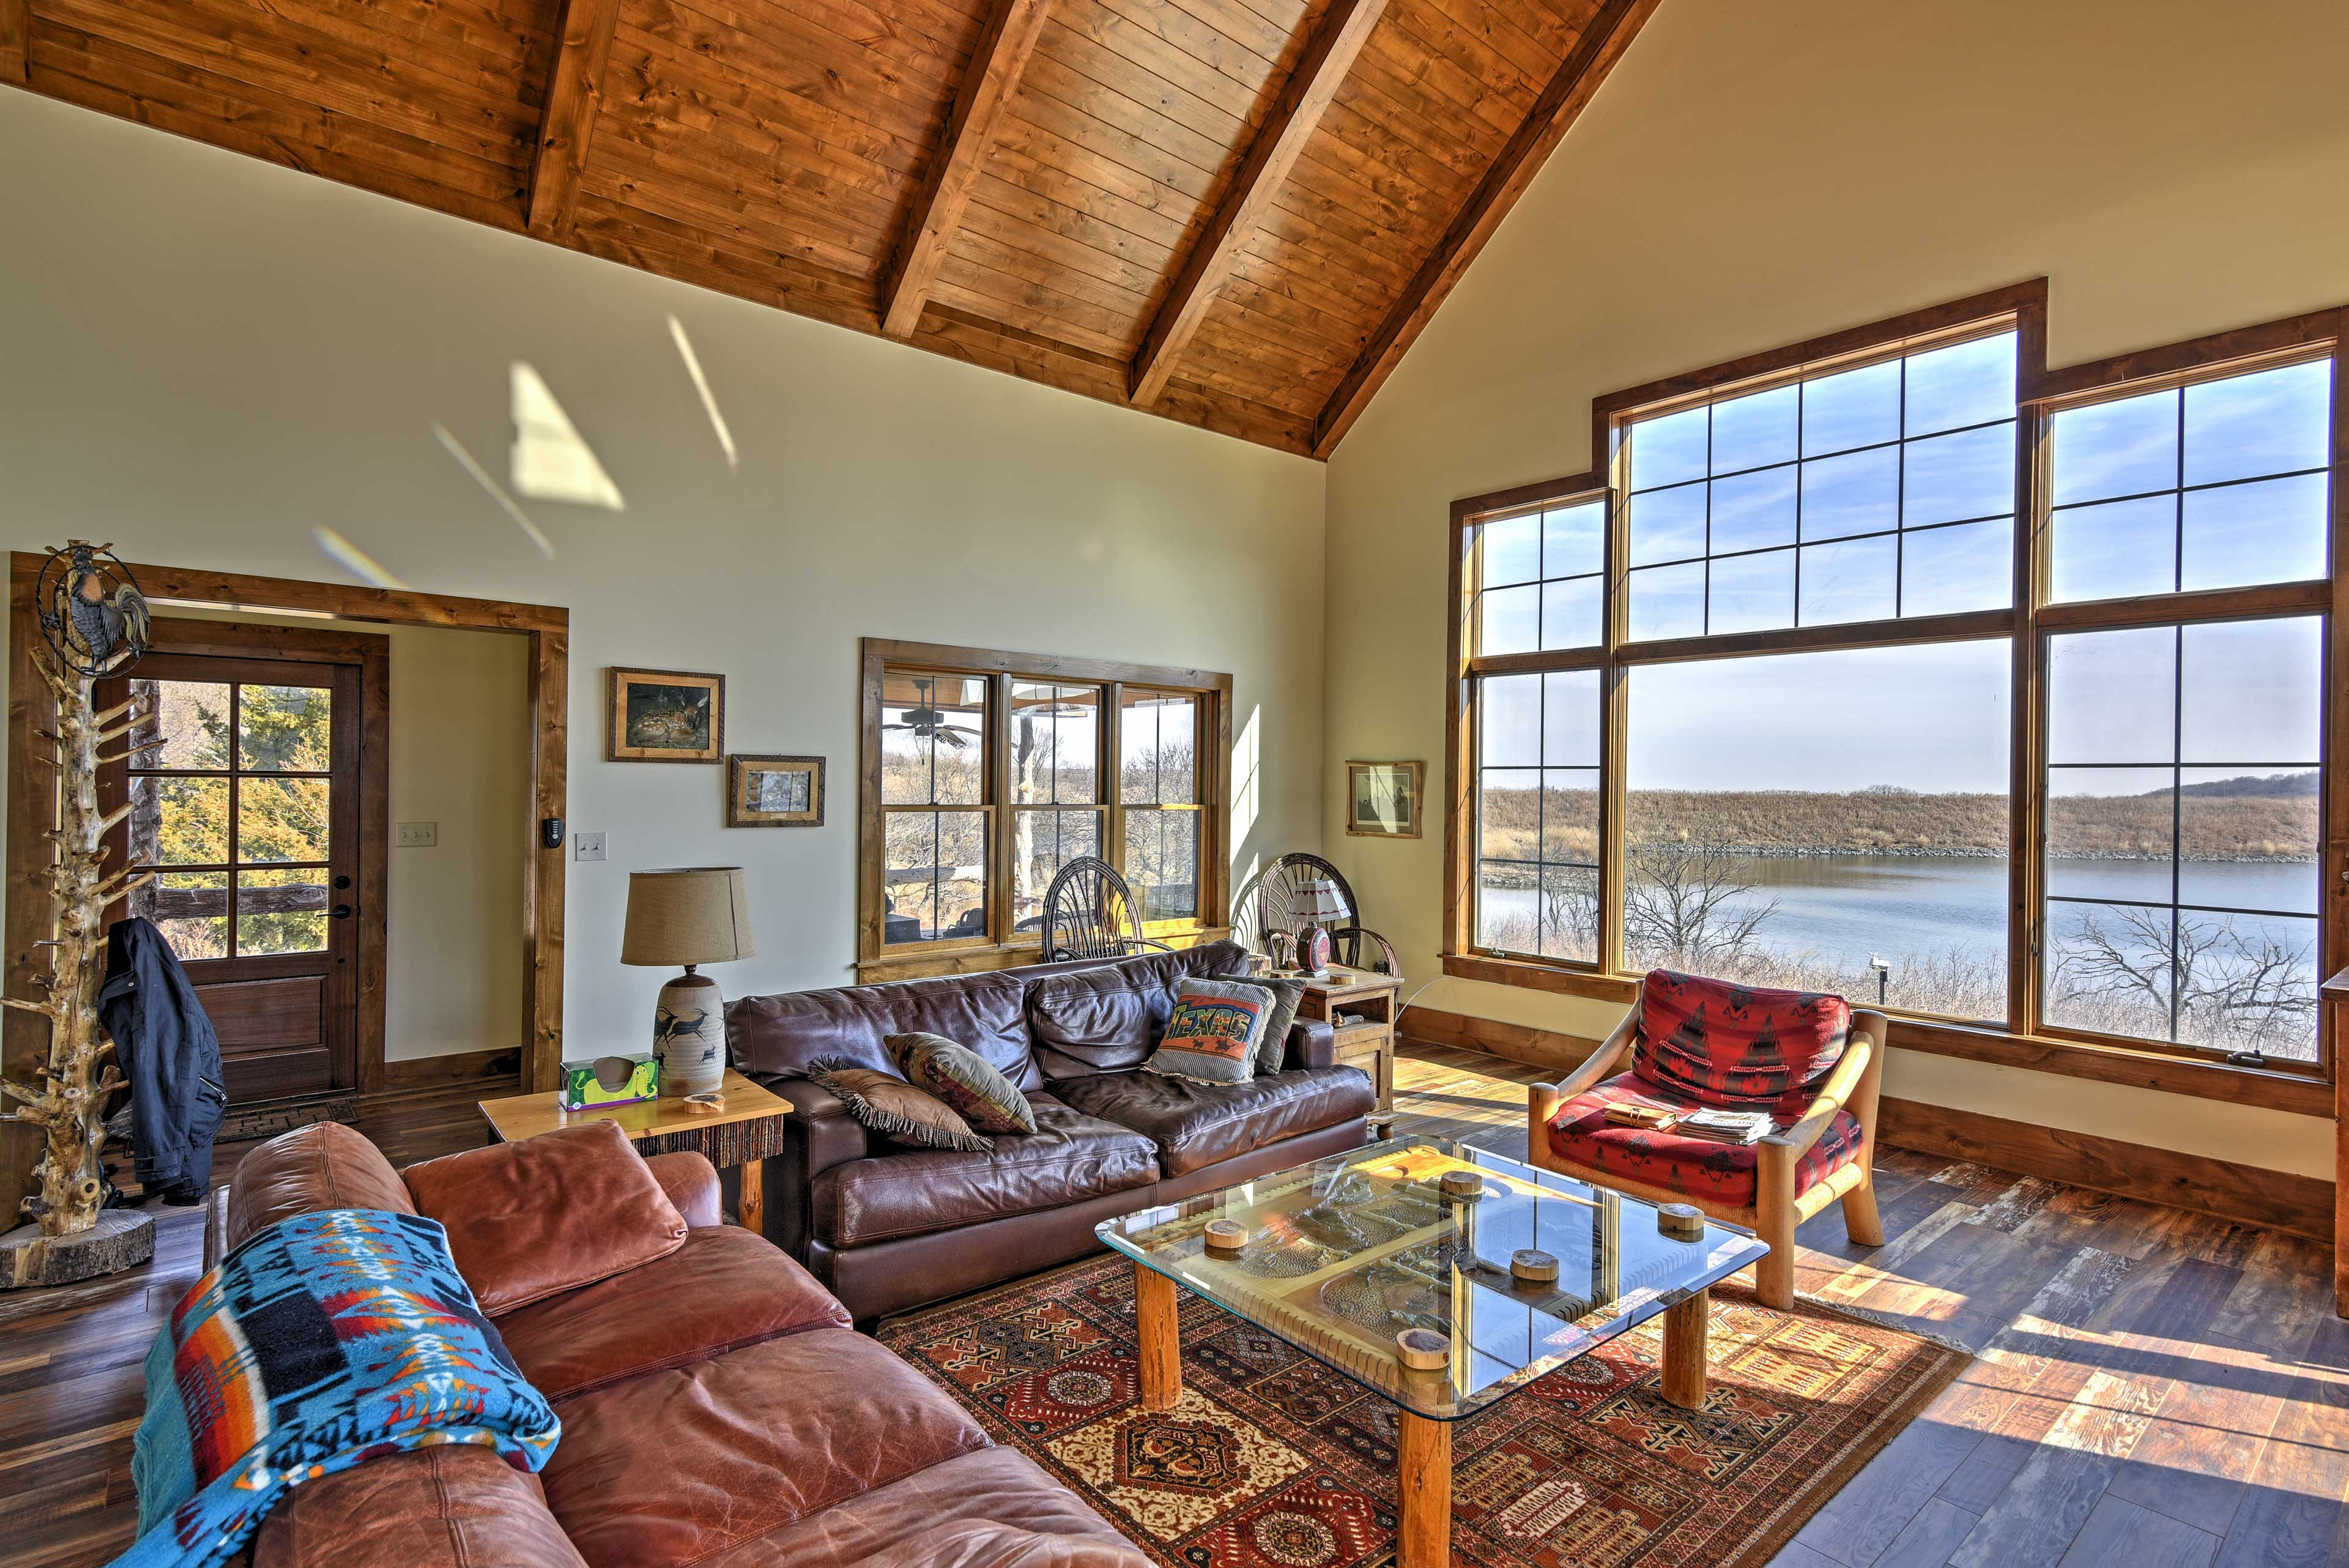 Marvel at the lakefront views from the living room.